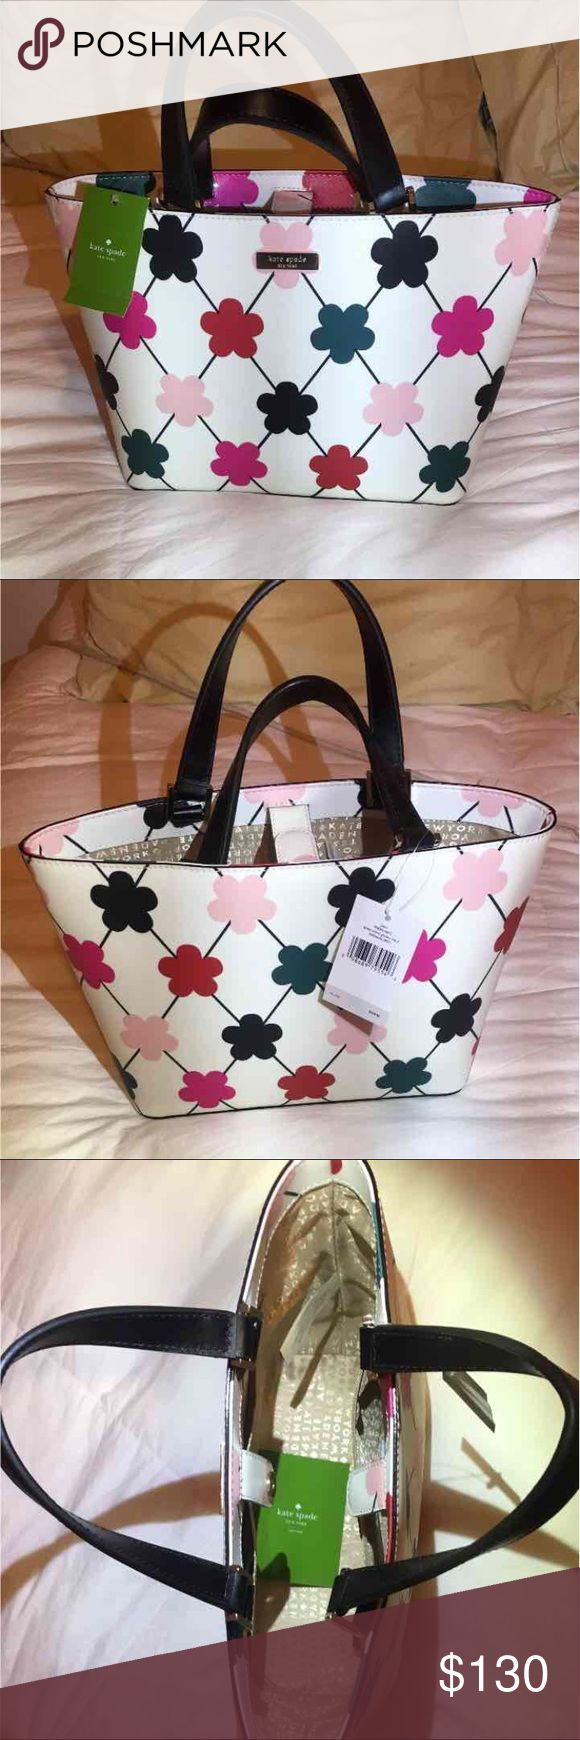 AUTHENTIC Kate Spade Purse Authentic Kate Spade Purse. Style is called Juno. This purse suggested retail price is $228. There is a very small mark that can barely be seen. It is only noticeable if you squint your eyes and stare at it for a while. Also at this moment price is non negotiable. NO TRADES!!!!! kate spade Bags Satchels